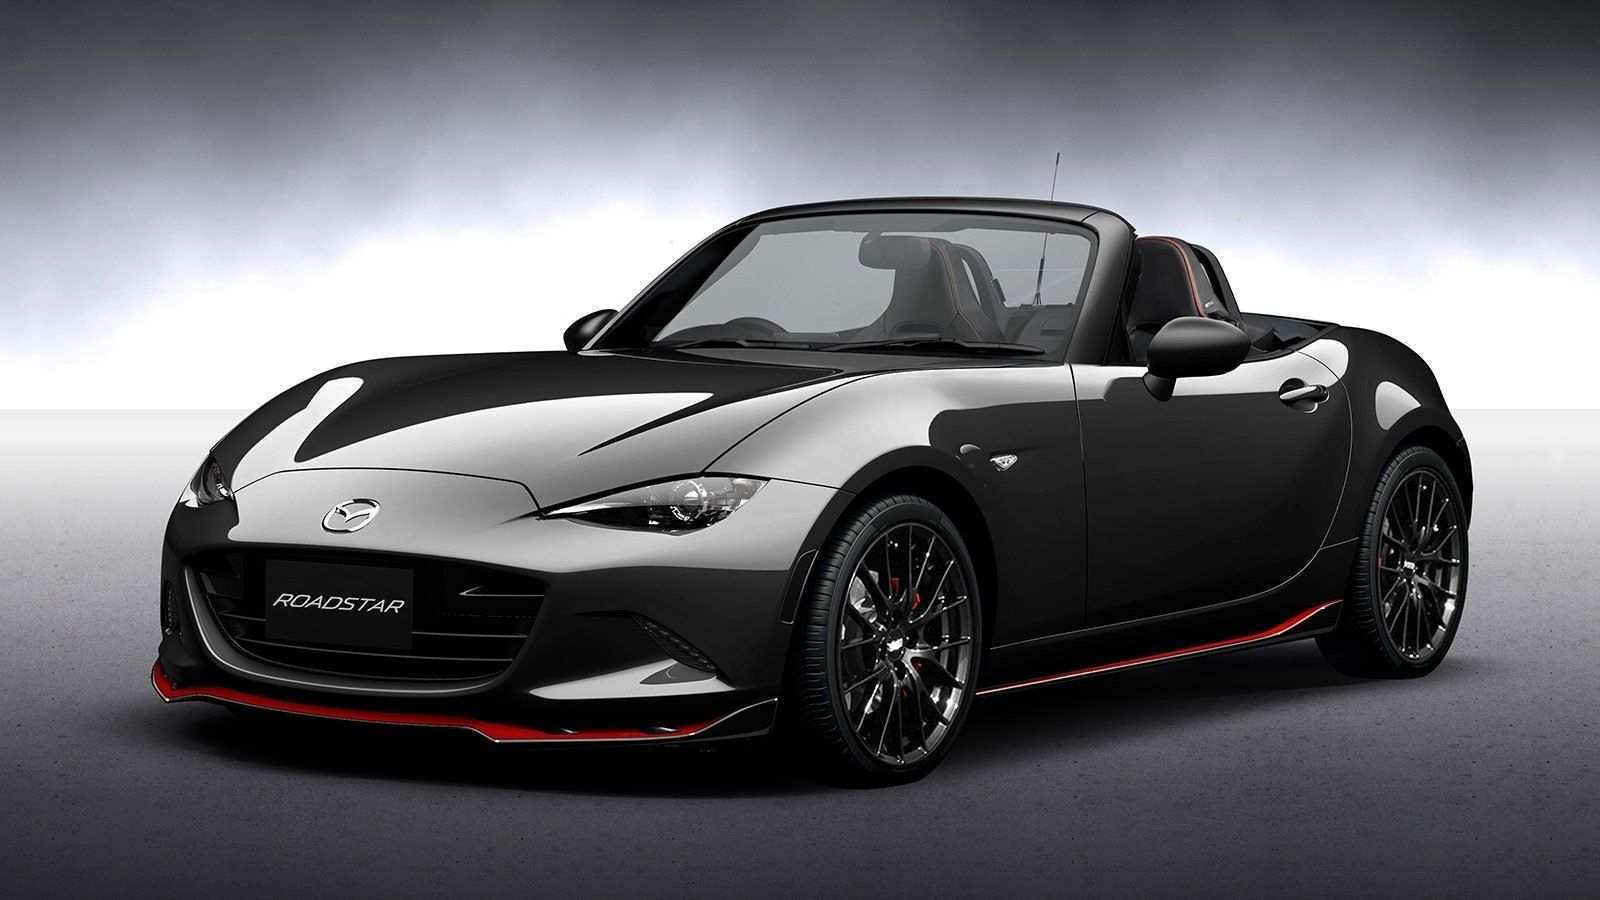 49 Gallery of 2020 Mazda MX 5 New Review with 2020 Mazda MX 5